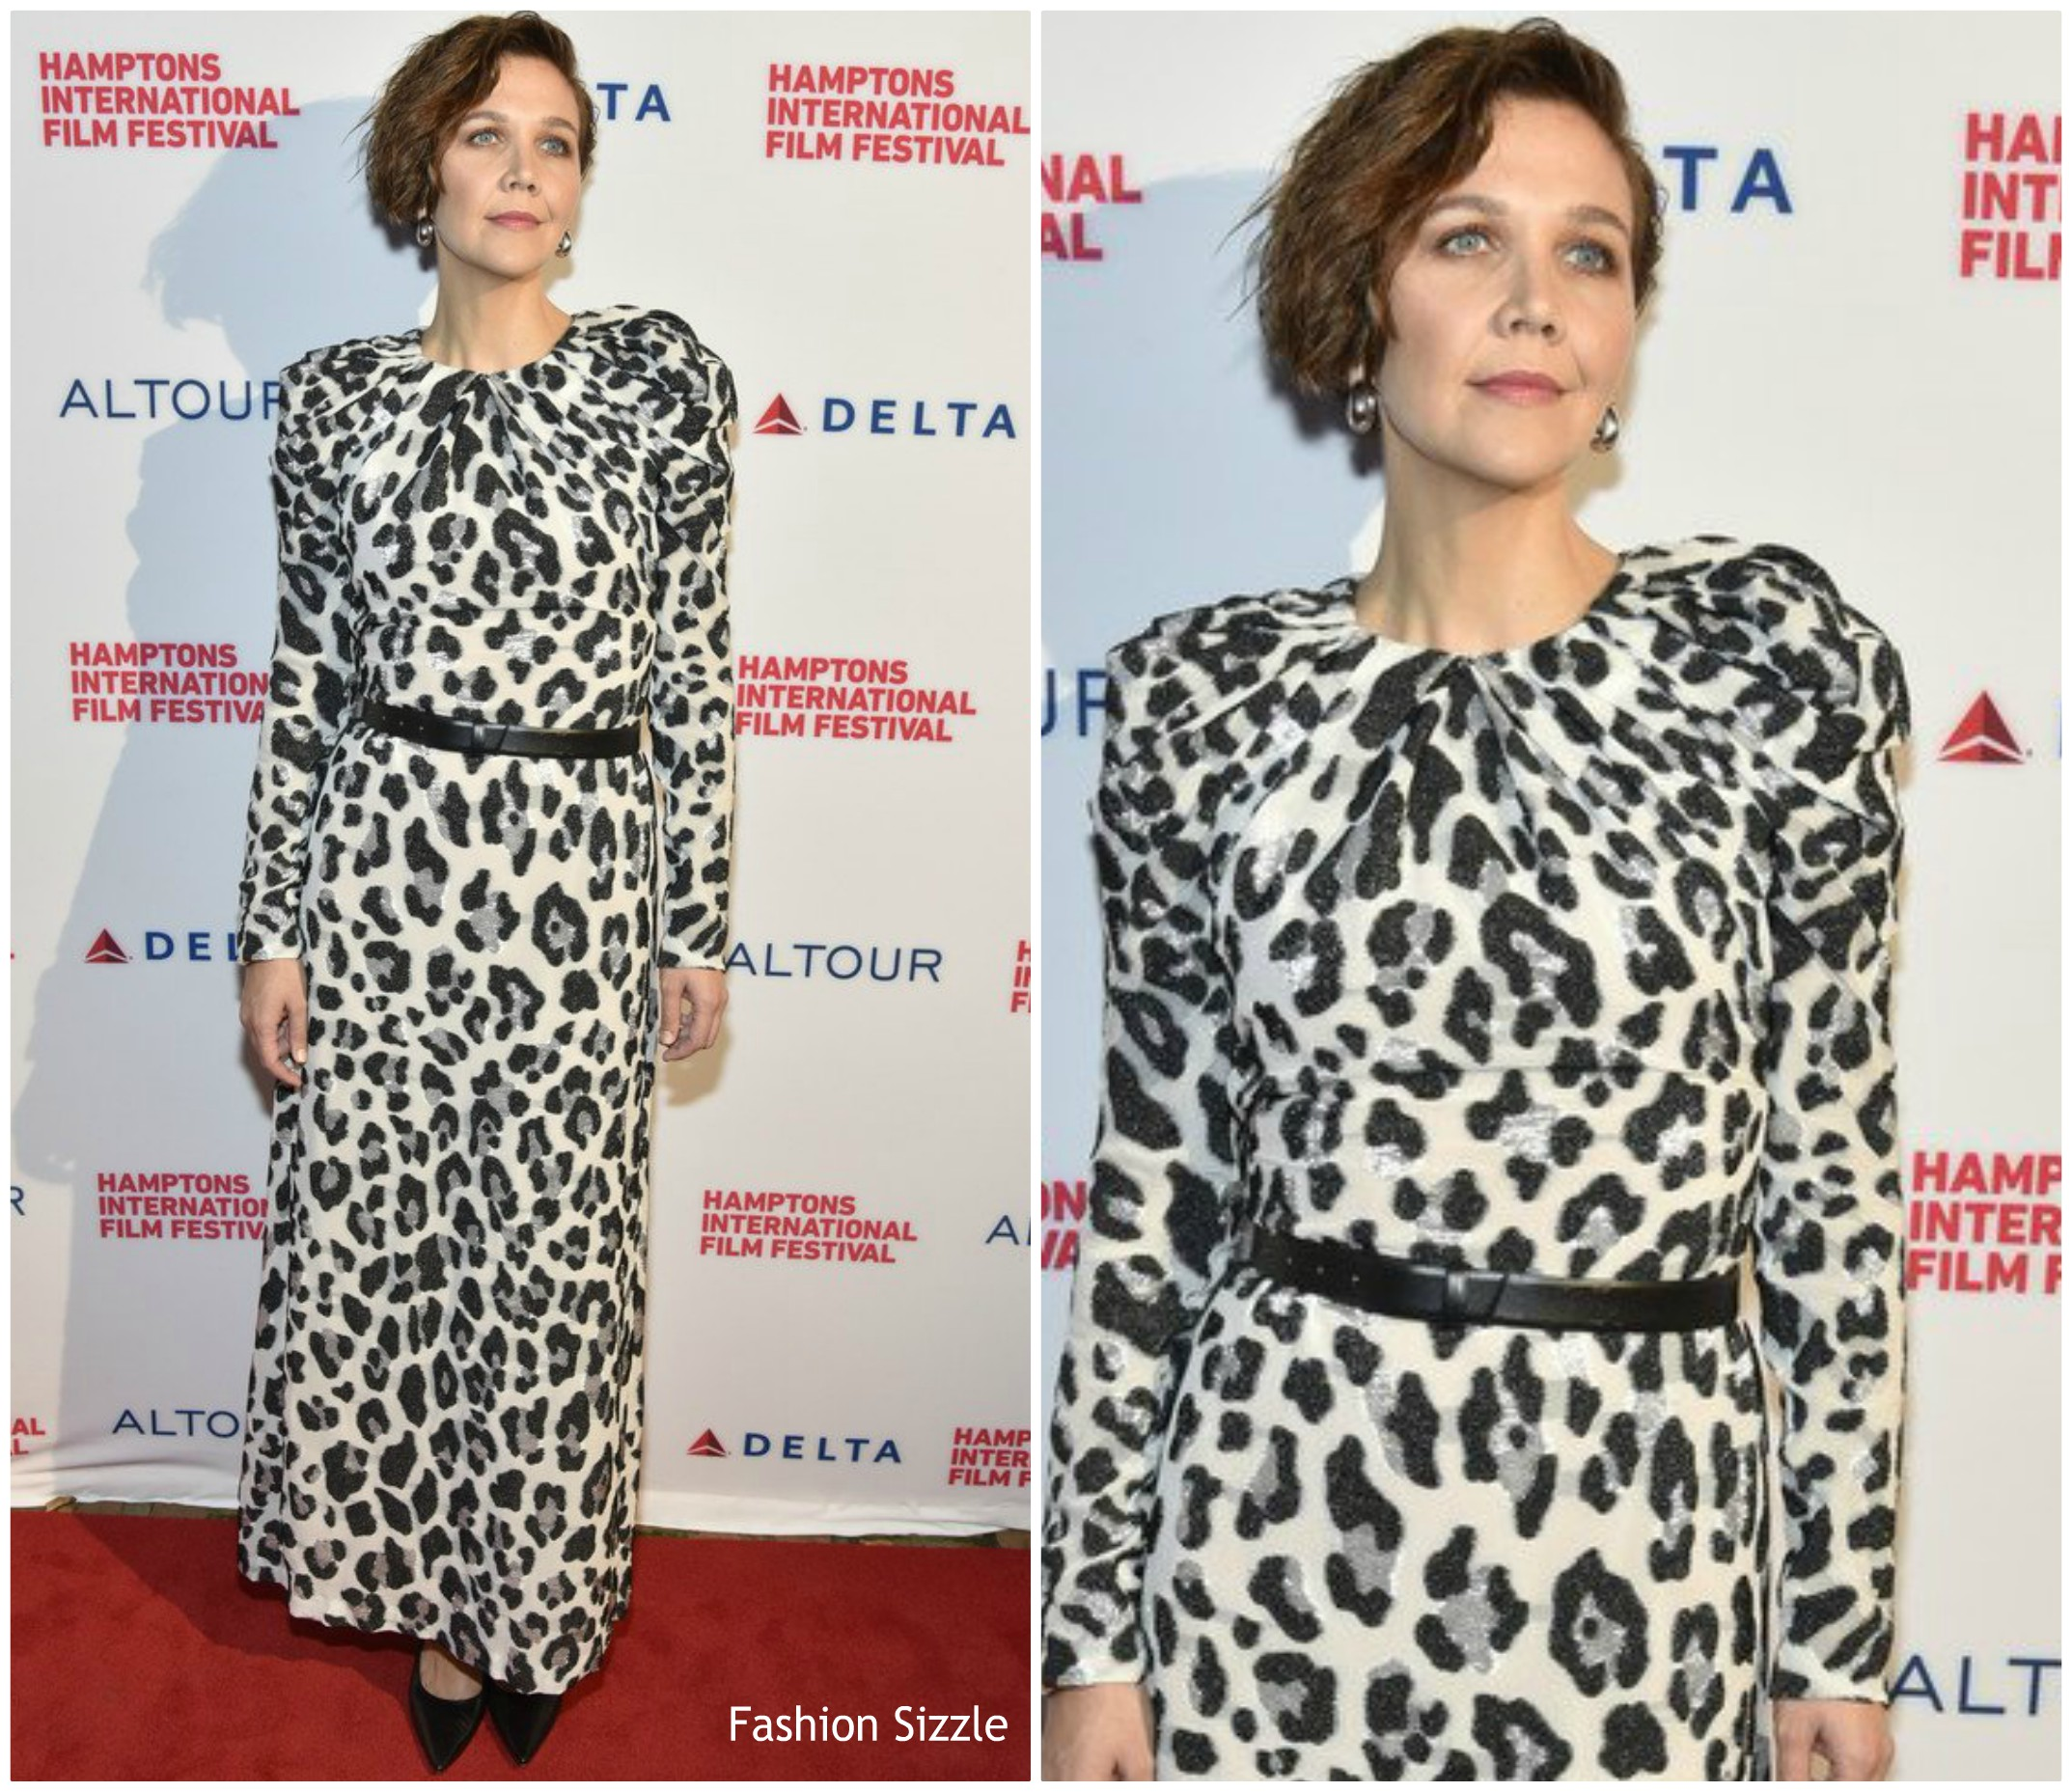 maggie-gyllenhaal-in-carolina-herrera-the-kindergarten-teacher-hamptons-international-film-festival-premiere